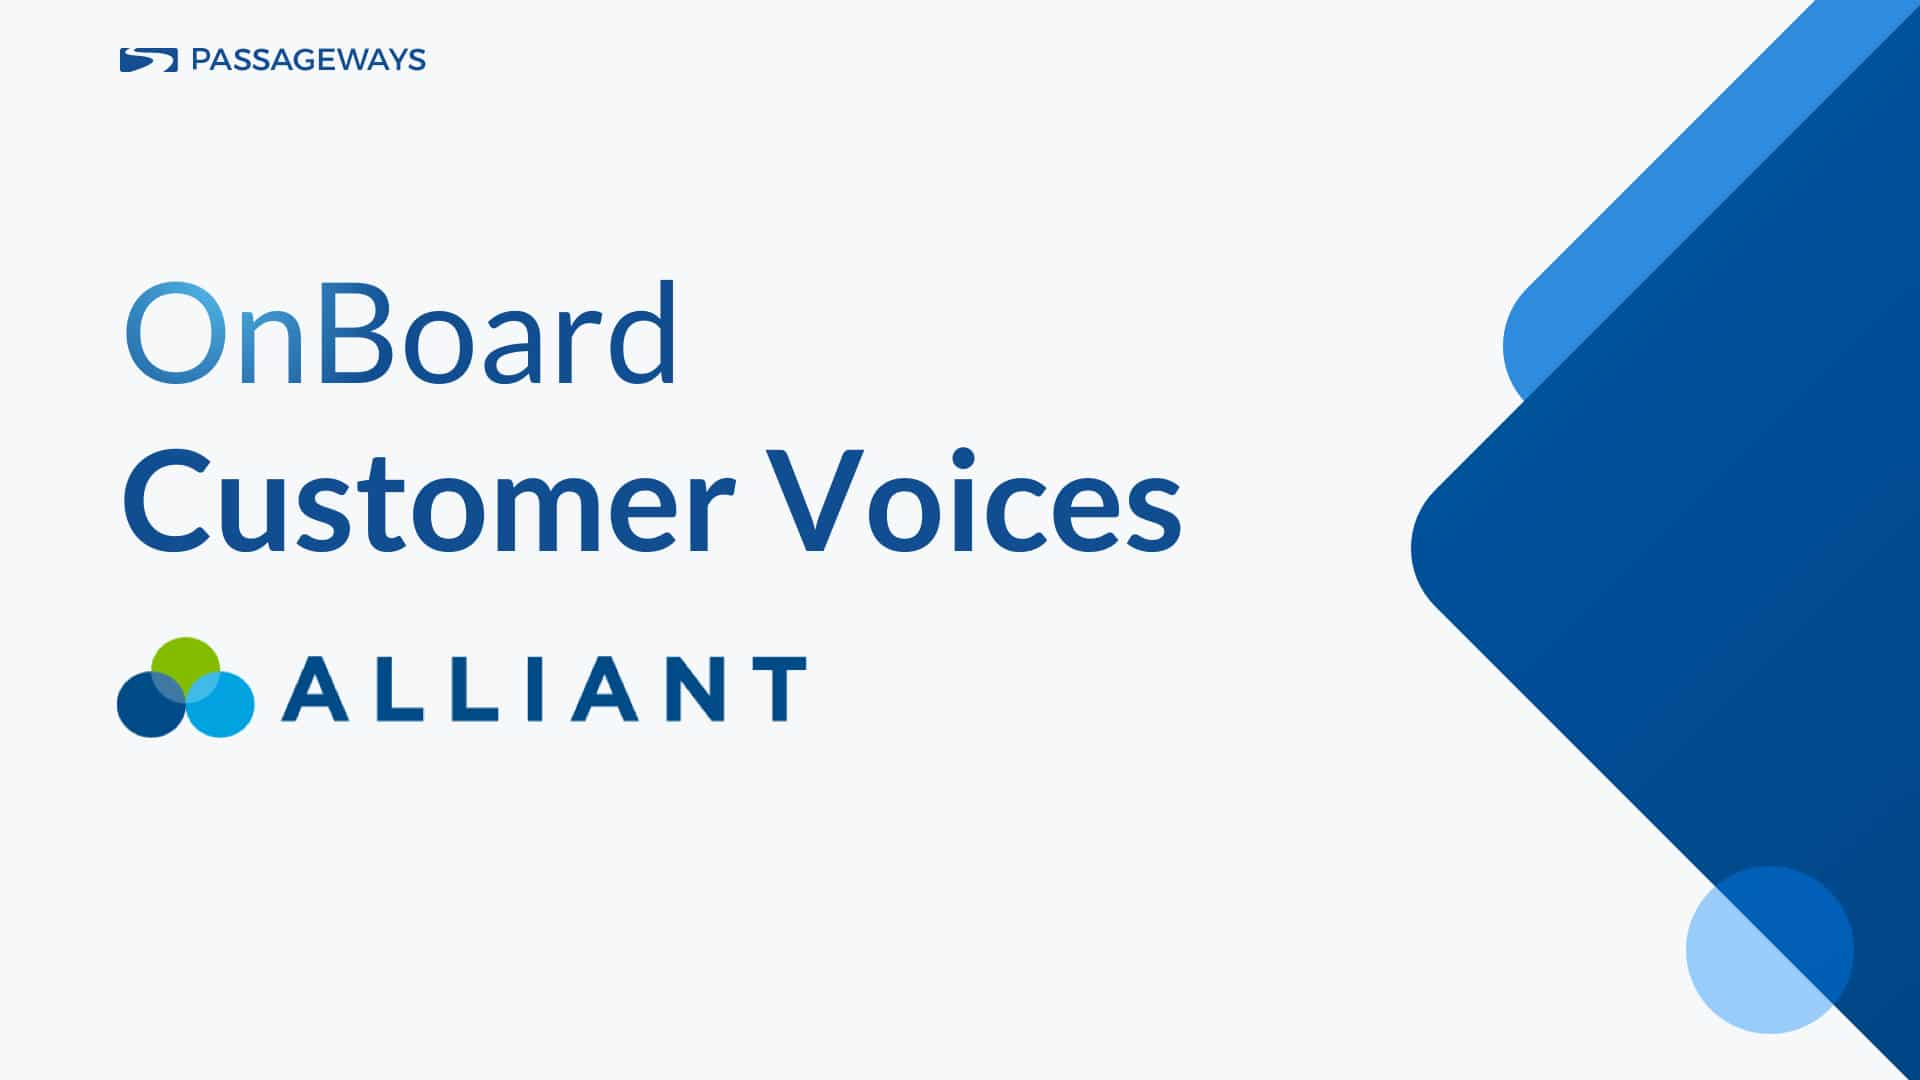 Customer Voices Alliant